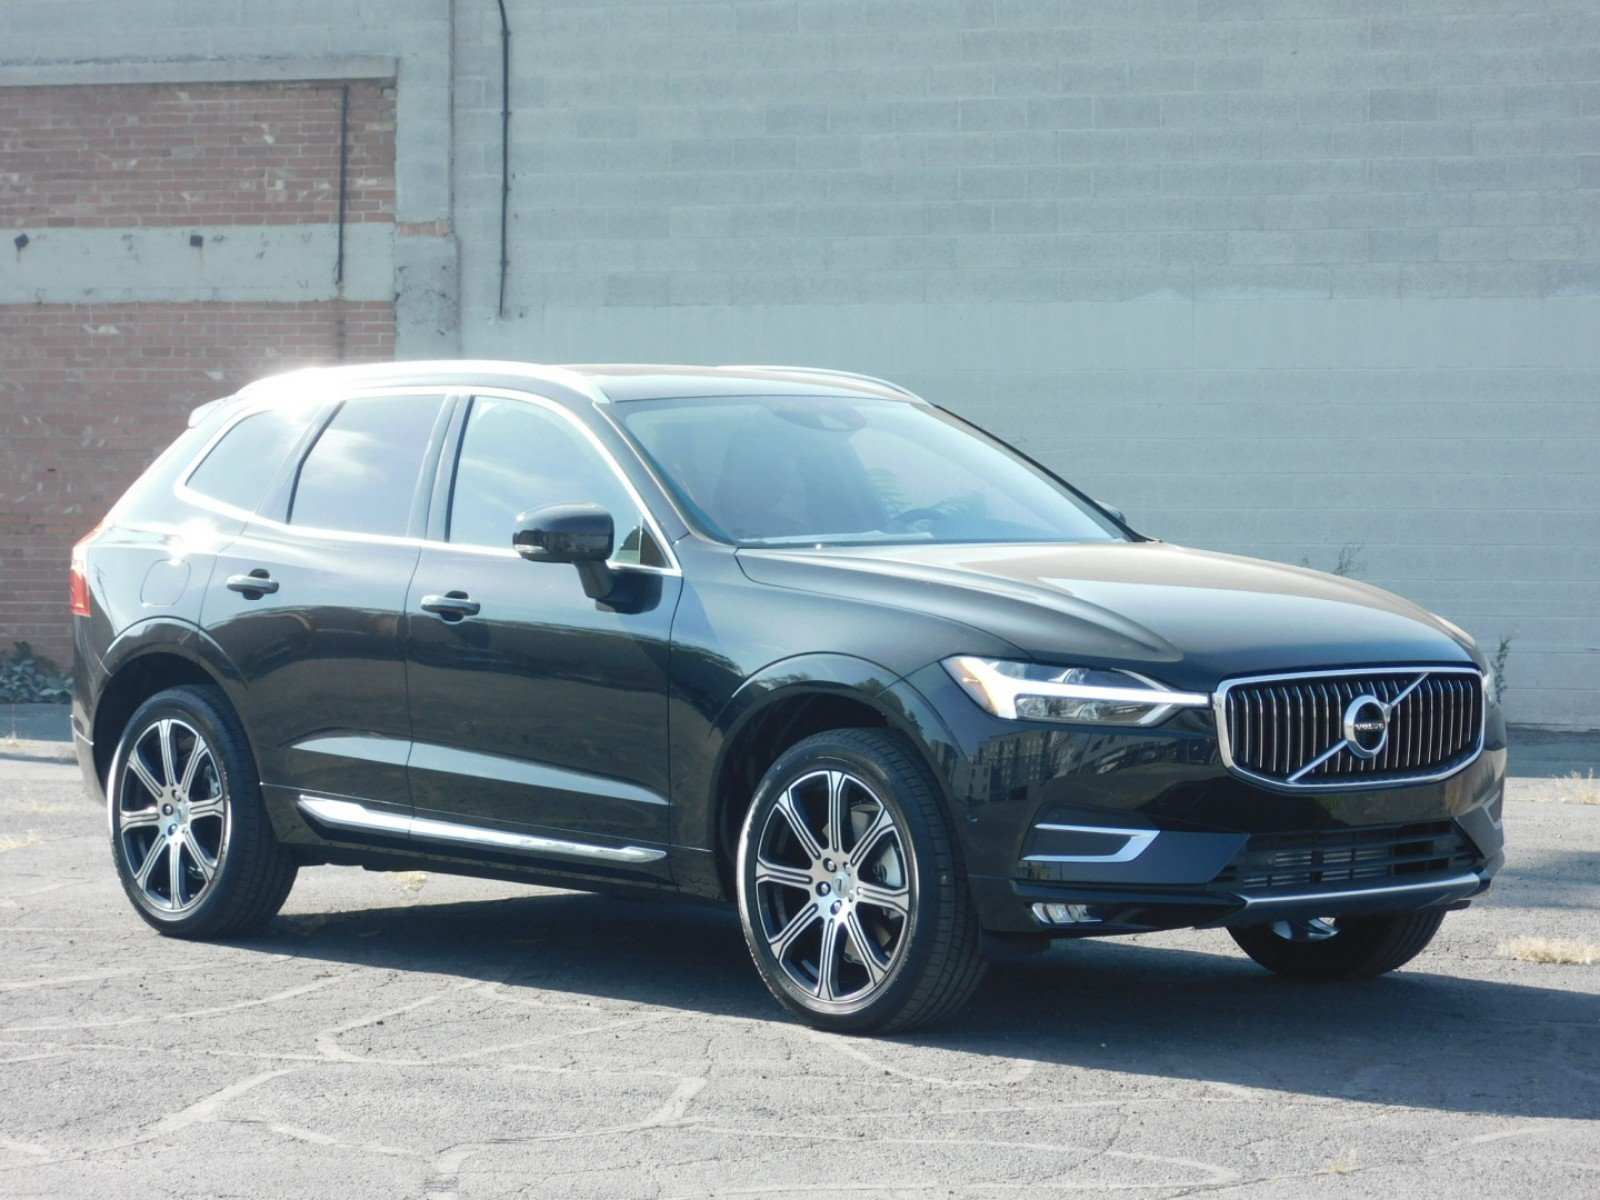 13 Concept of 2019 Volvo Xc60 Redesign by 2019 Volvo Xc60